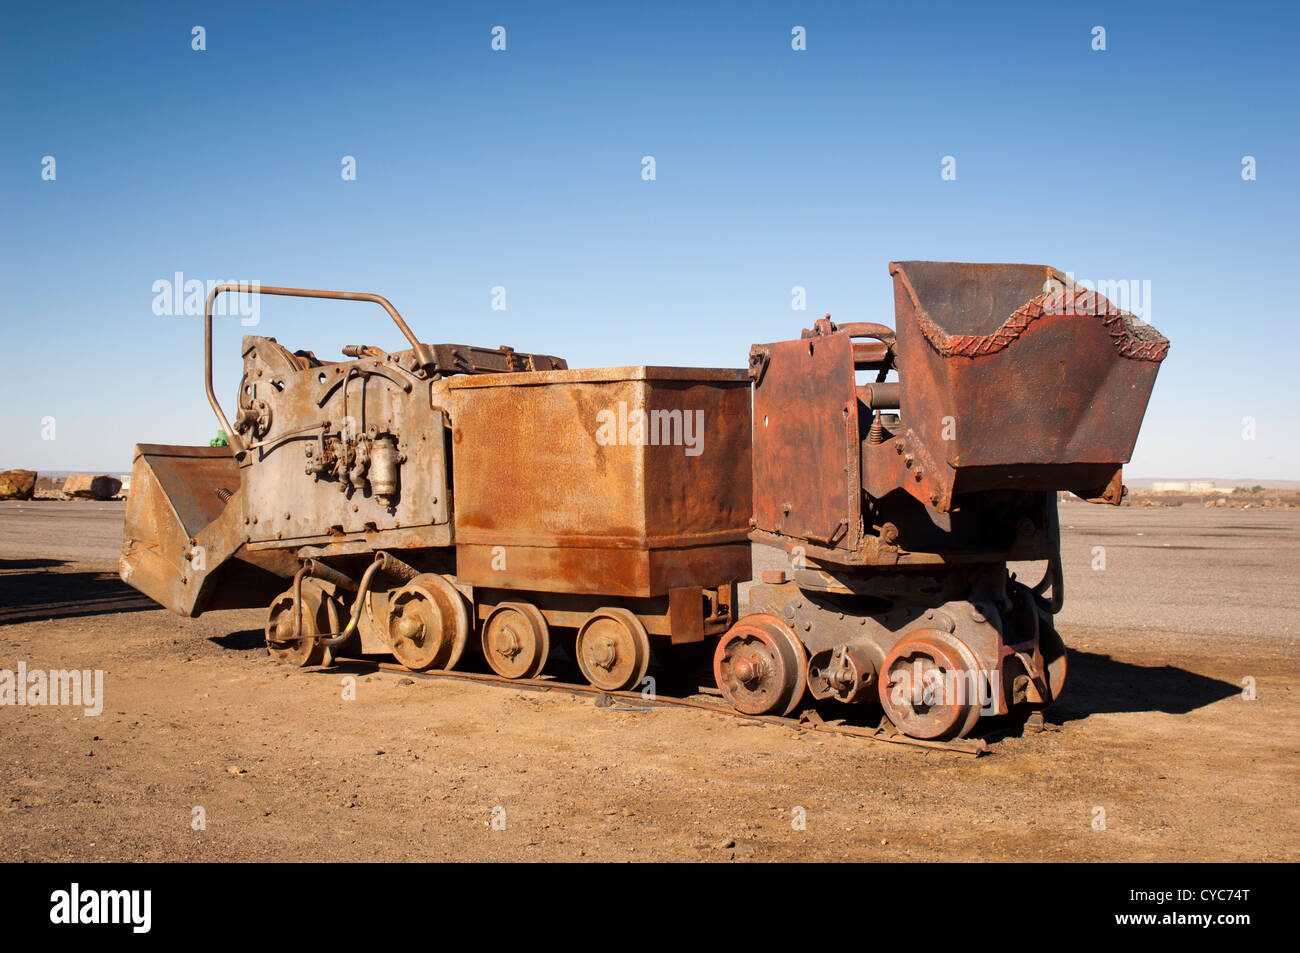 Old mining equipment in Australia Stock Photo, Royalty ...